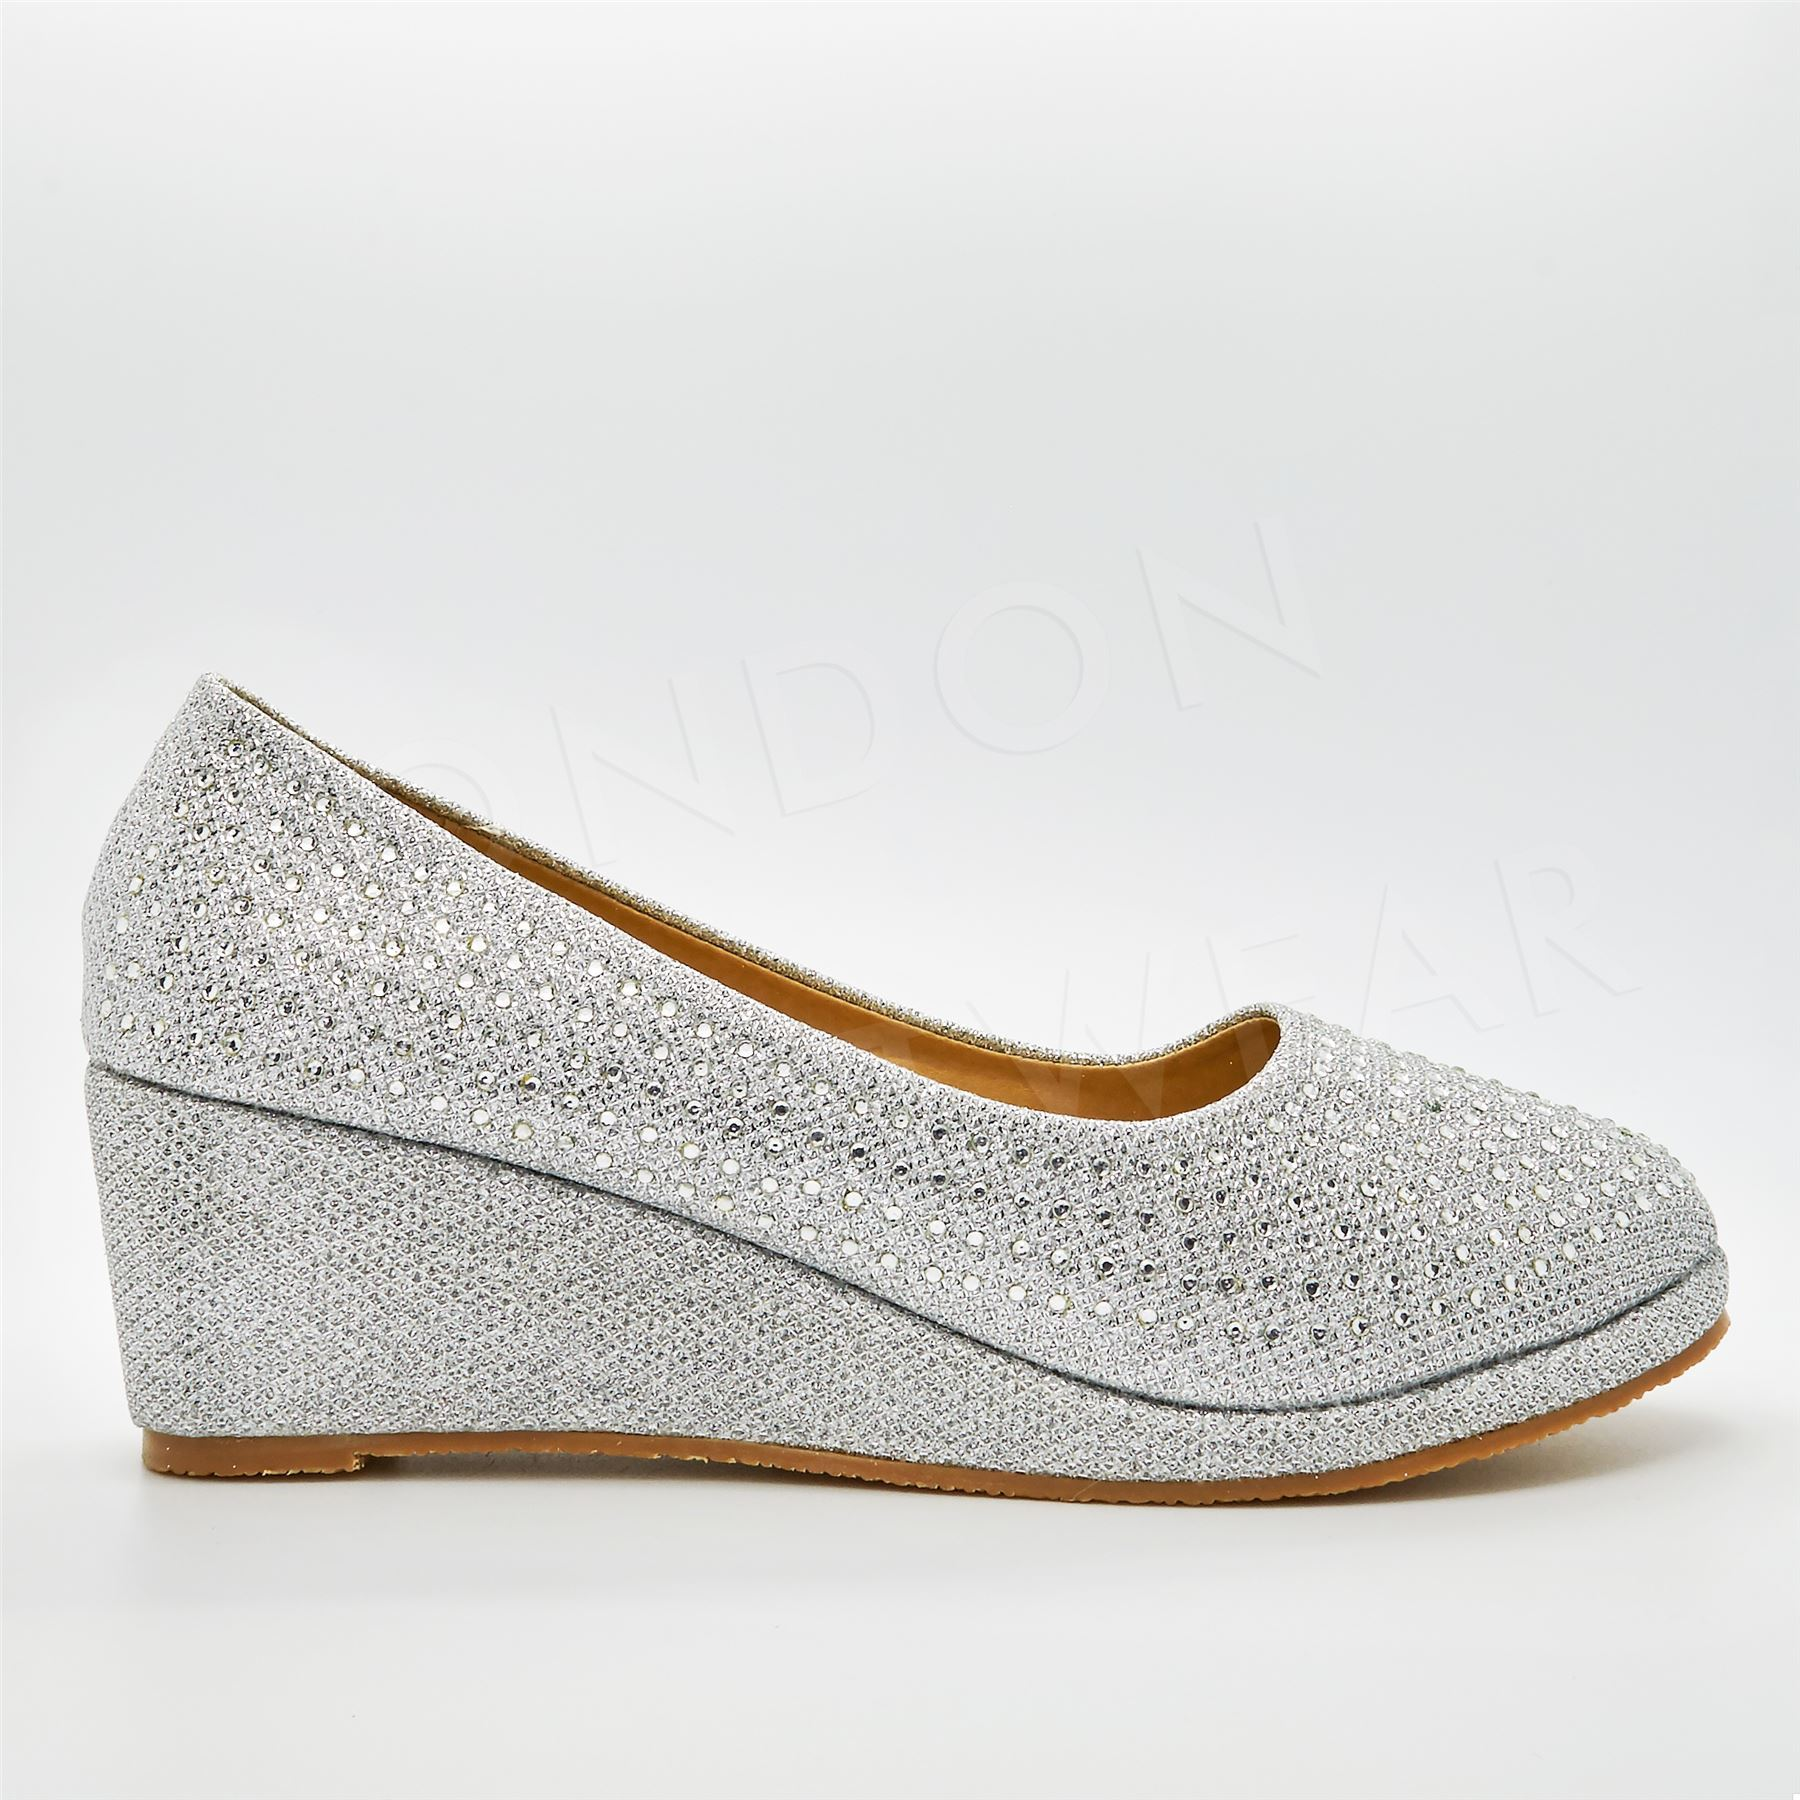 New Girls Diamante Low Wedge Heel Court Shoes Party Evening Wedding Slip On Size